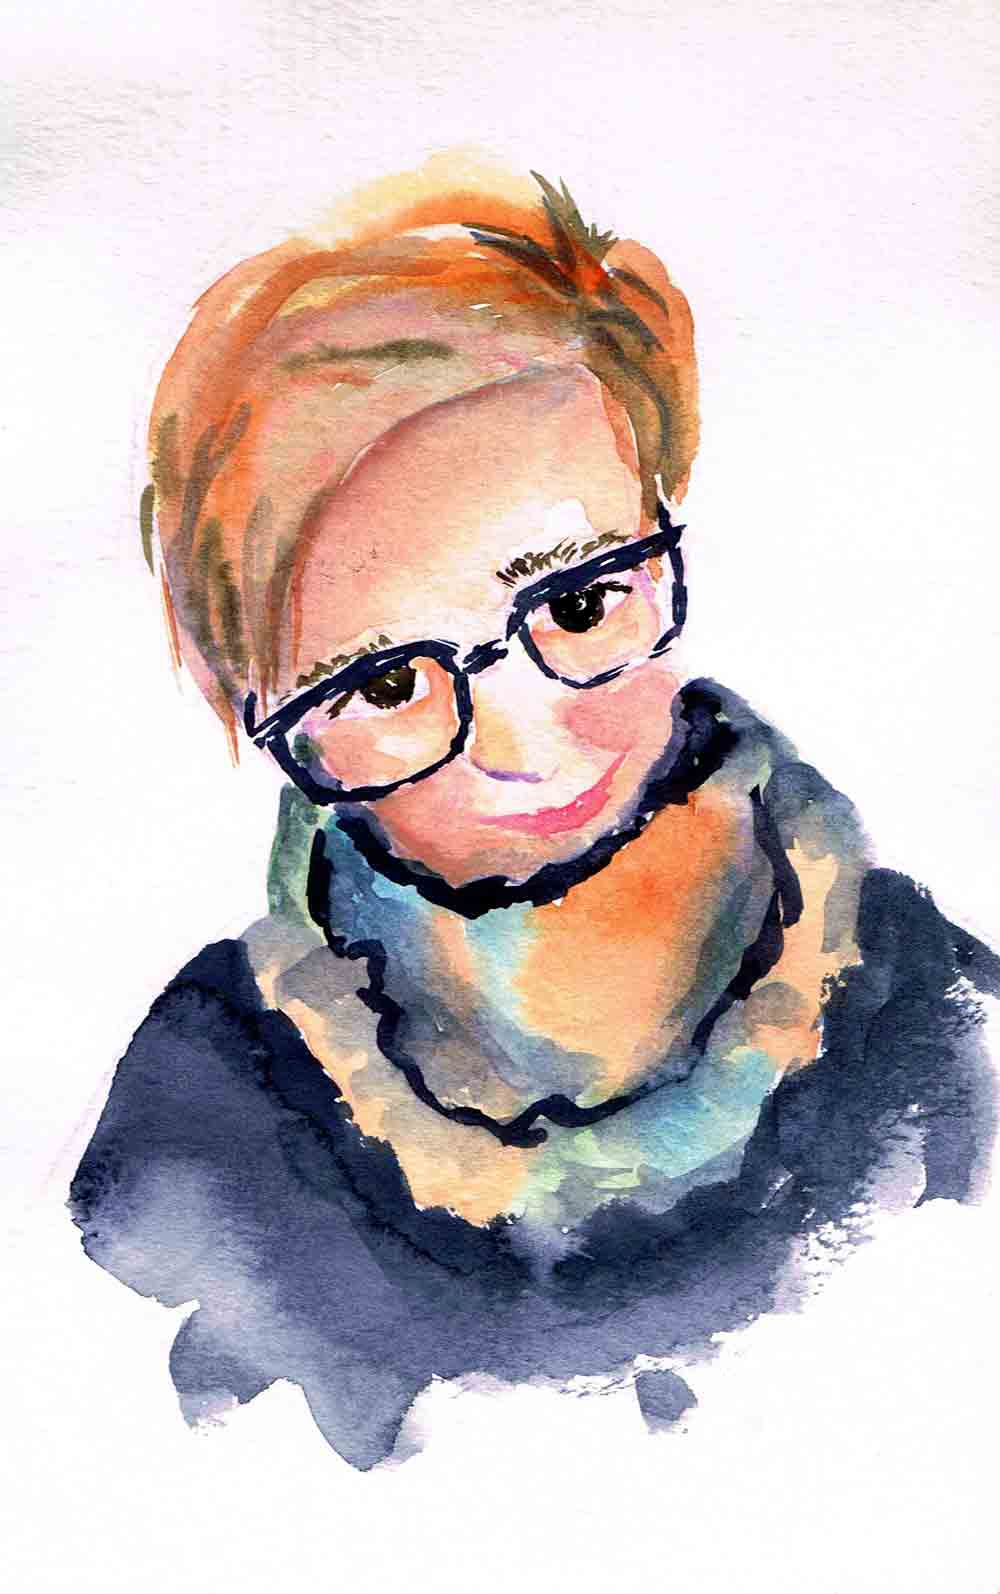 Watercolour-Portraits-4-Snuggly-Scarf-kw.jpg